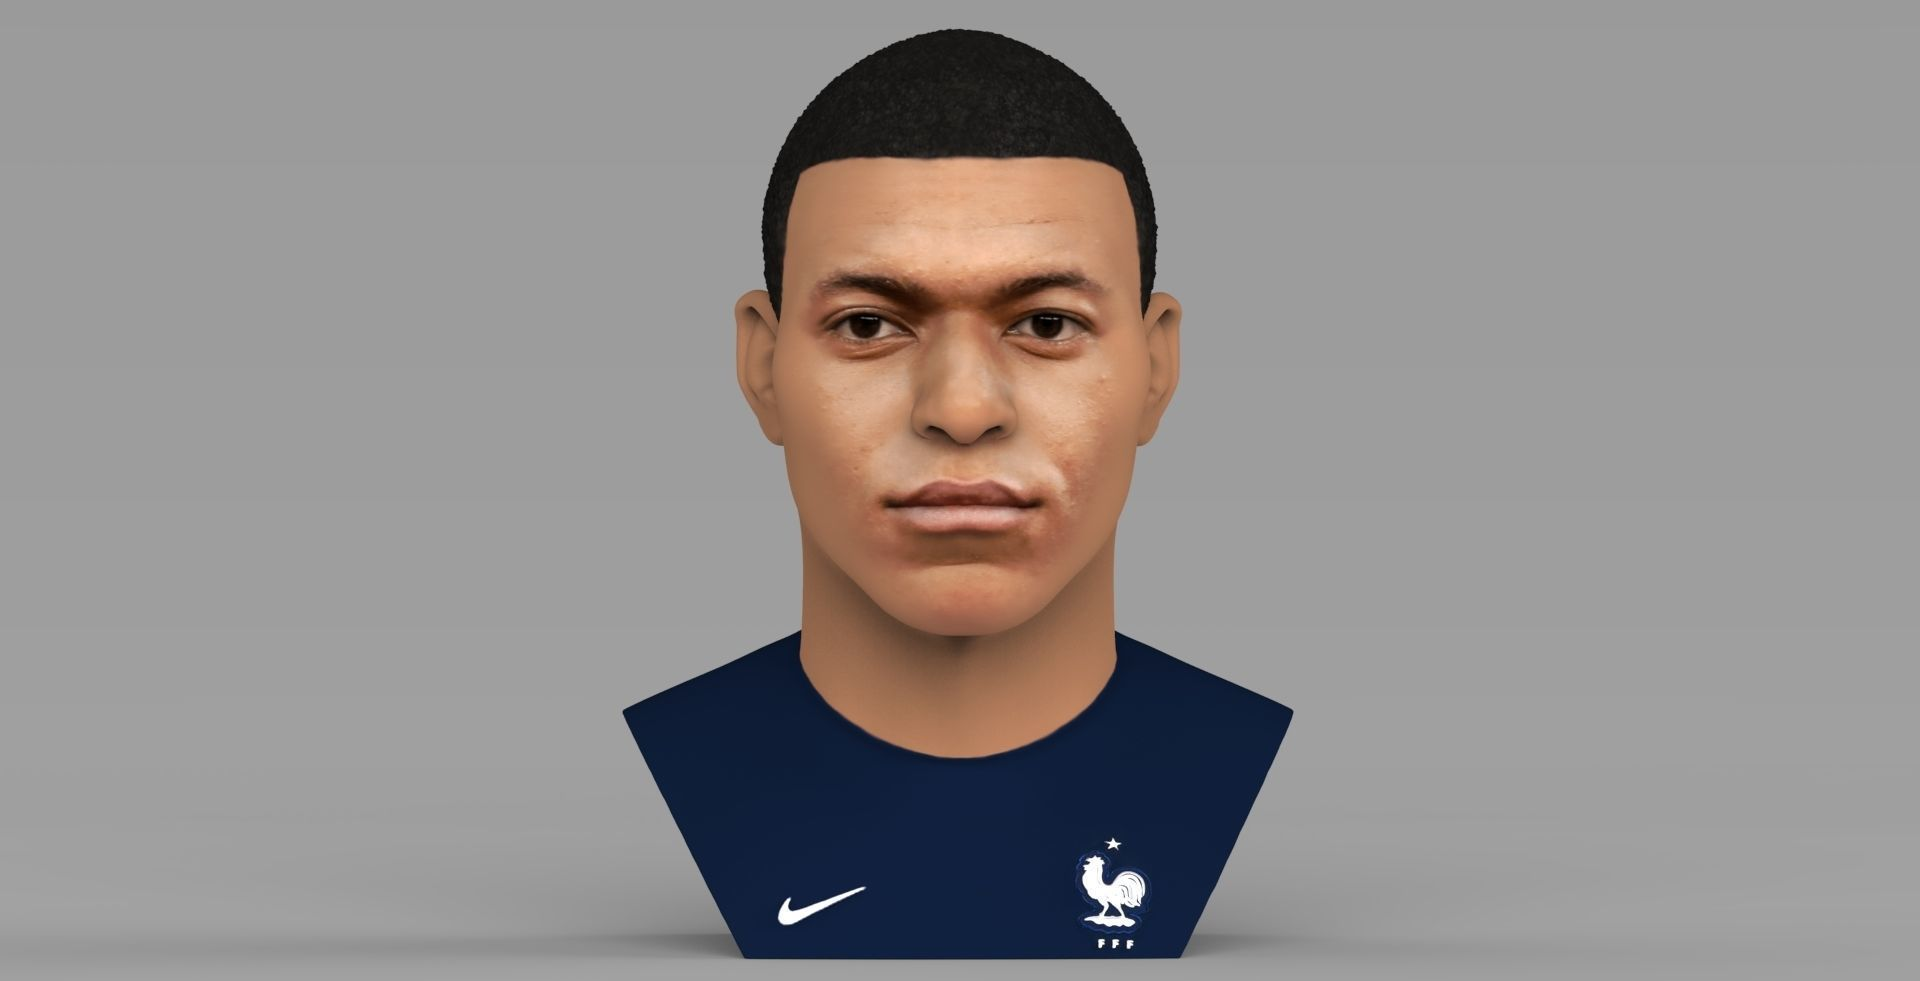 Kylian Mbappe bust ready for full color 3D printing